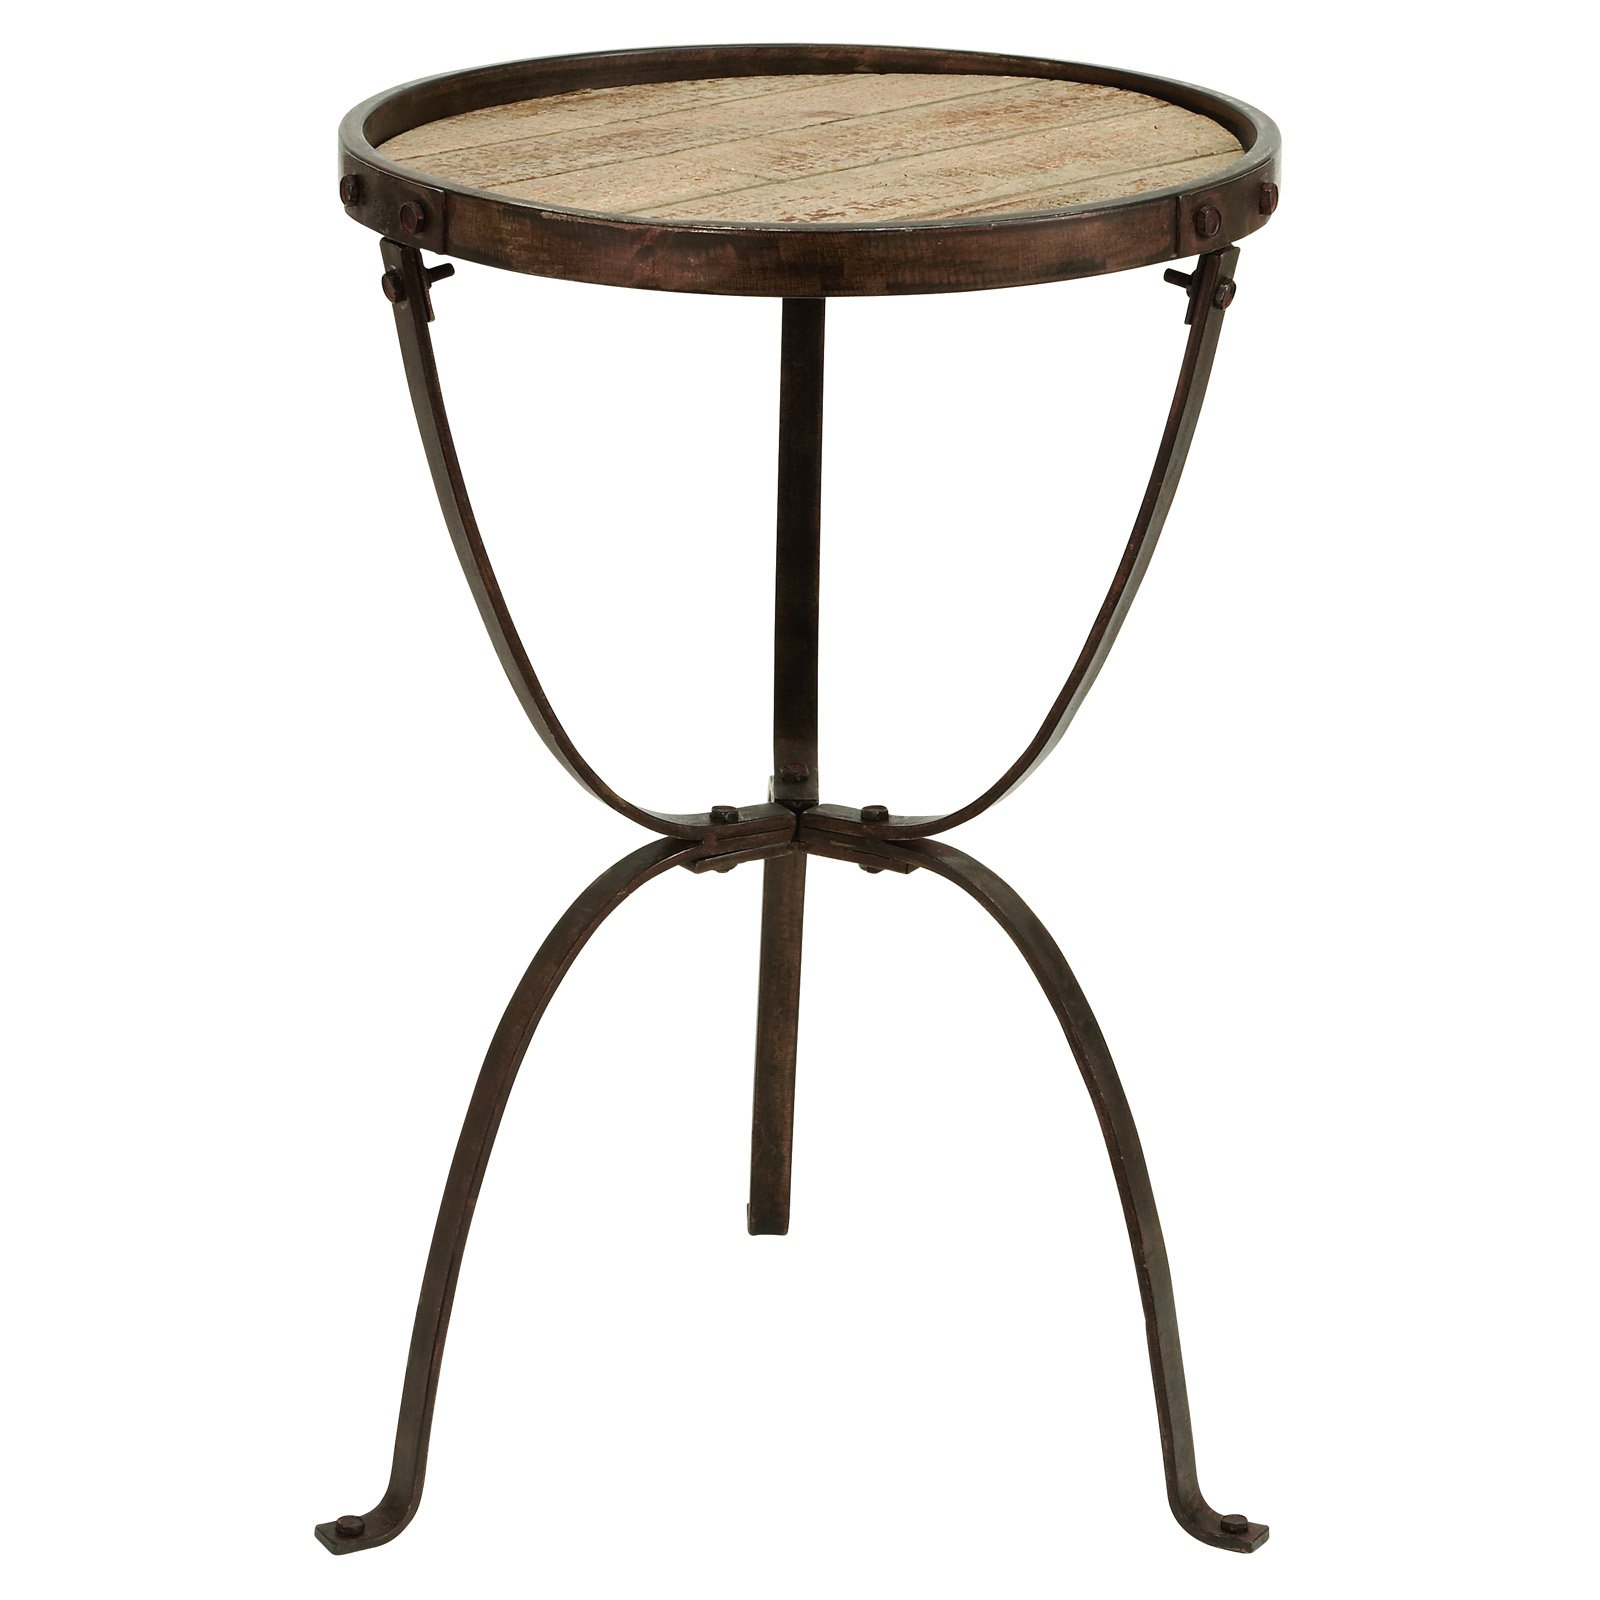 Decmode Metal and Wood Accent Table, Brown